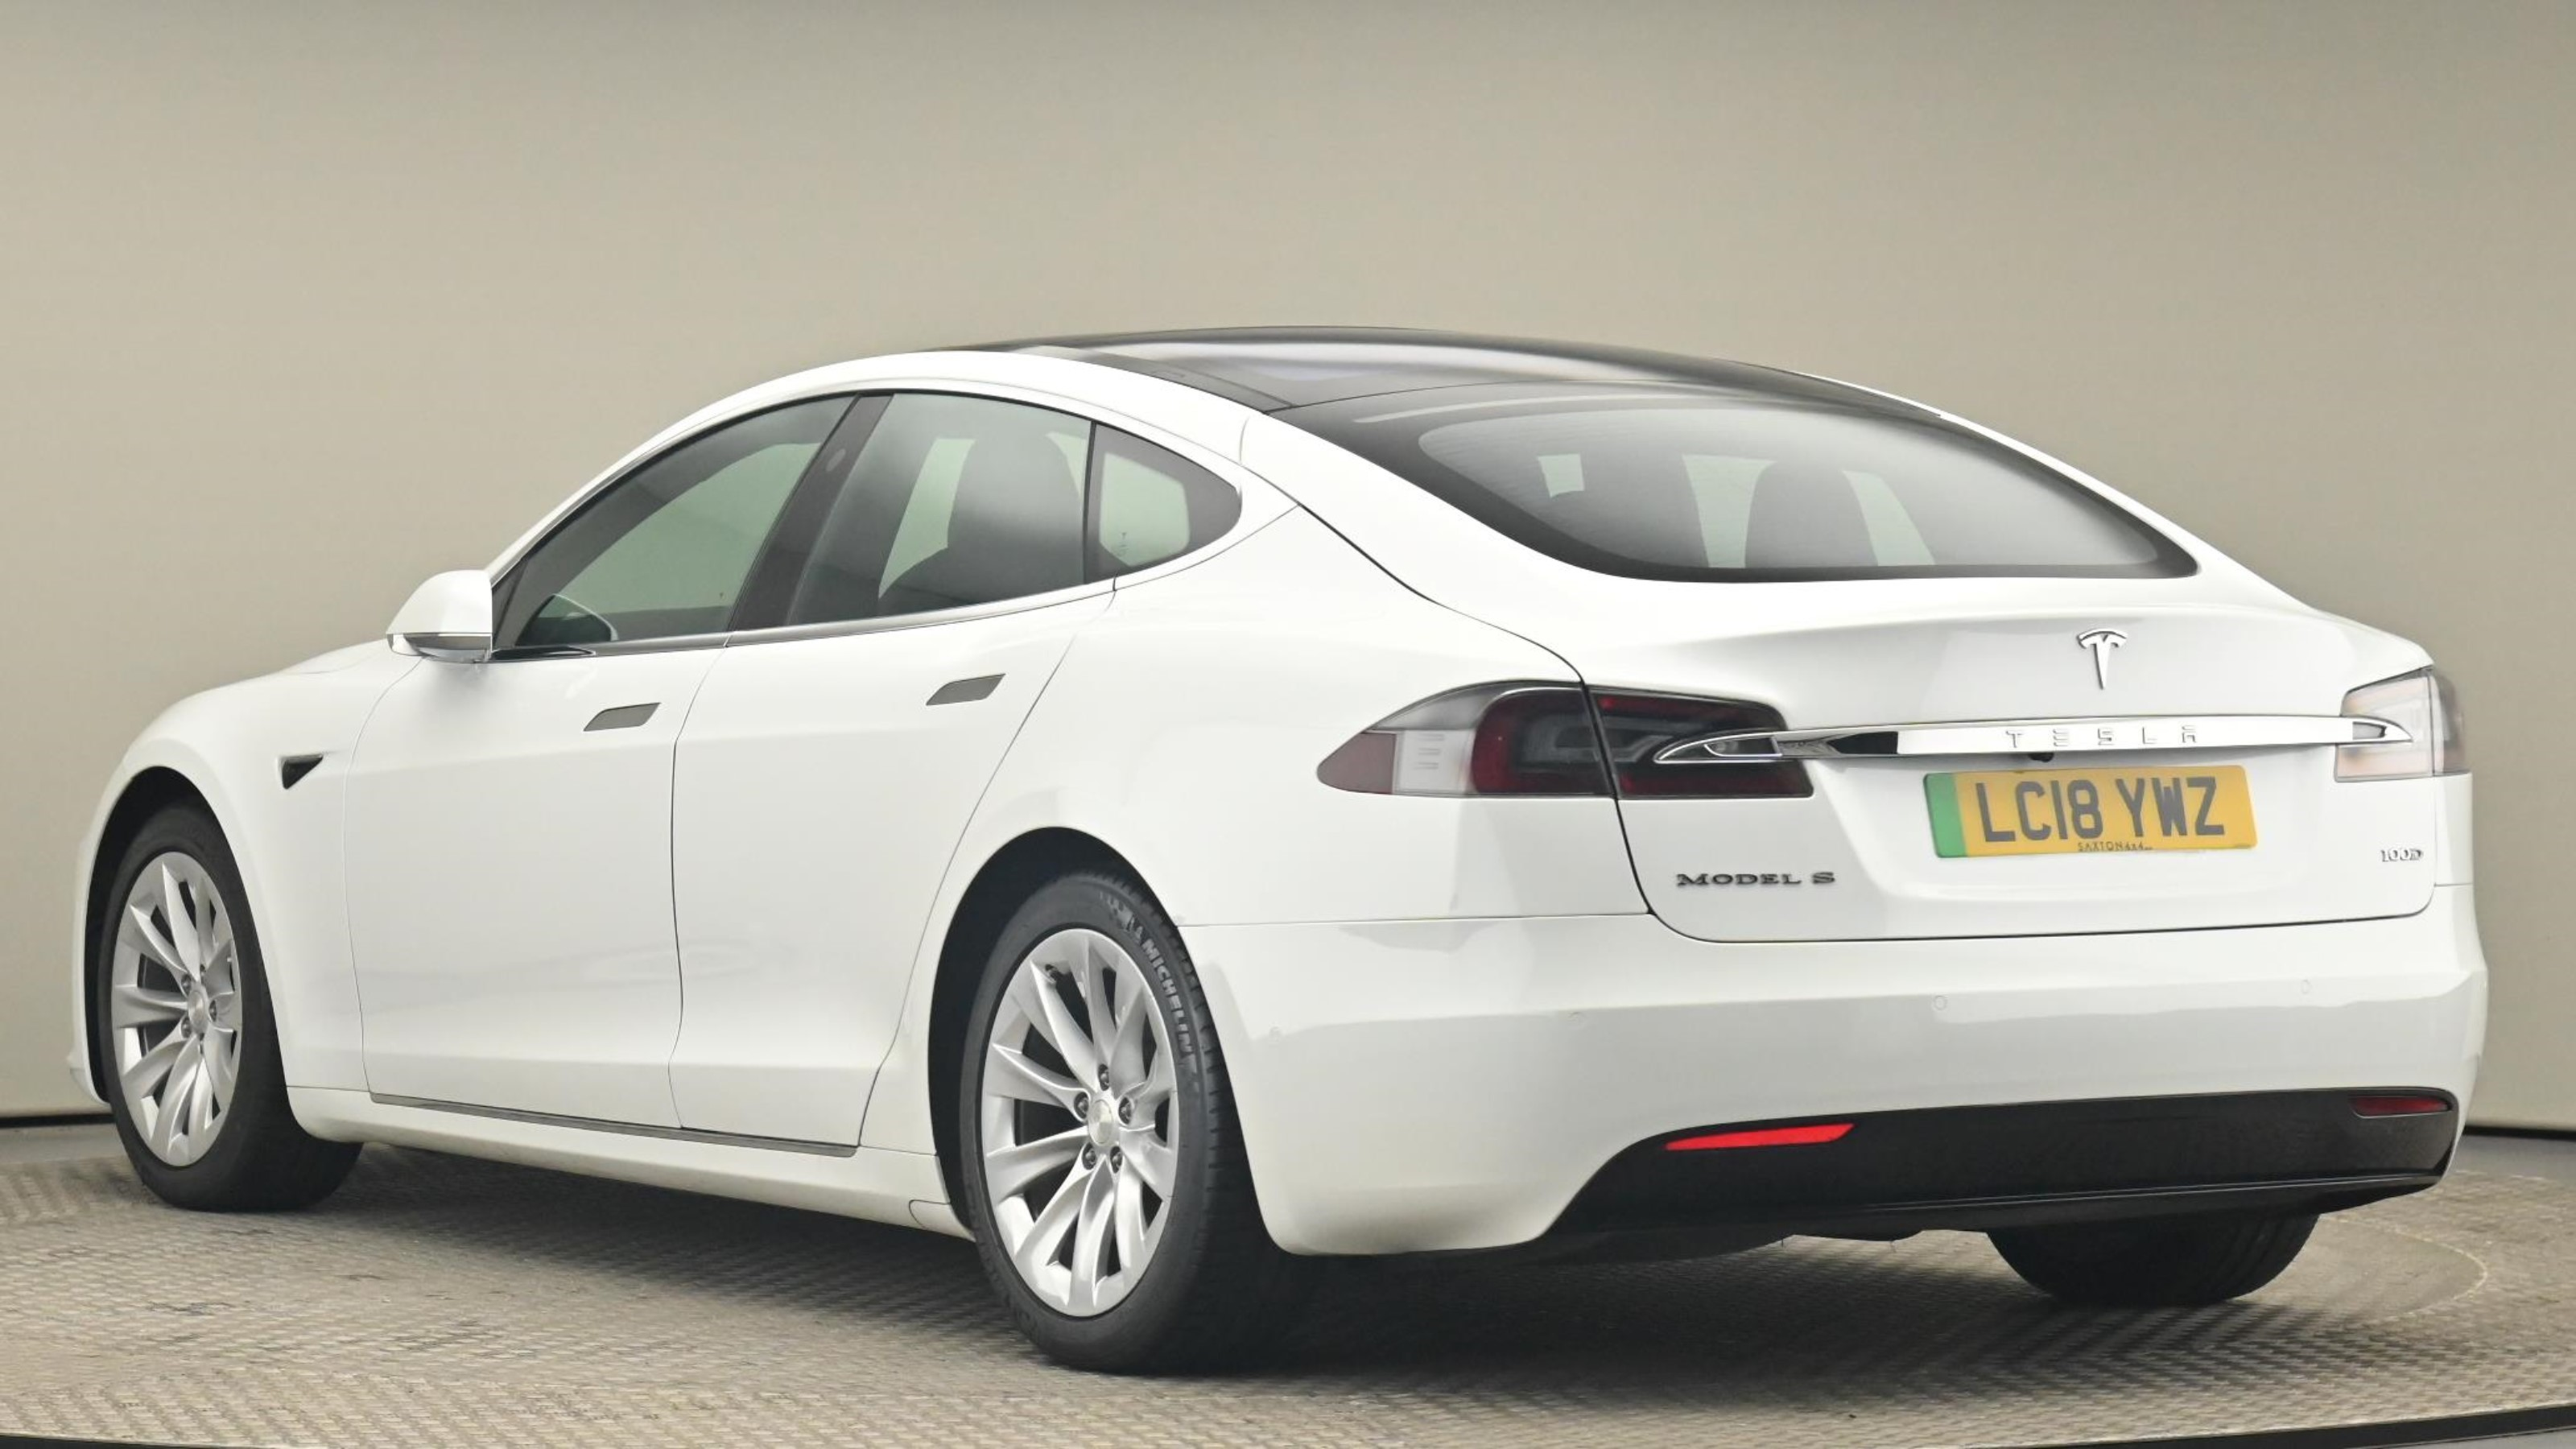 Used 2018 Tesla MODEL S 449kW 100kWh Dual Motor 5dr Auto WHITE at Saxton4x4